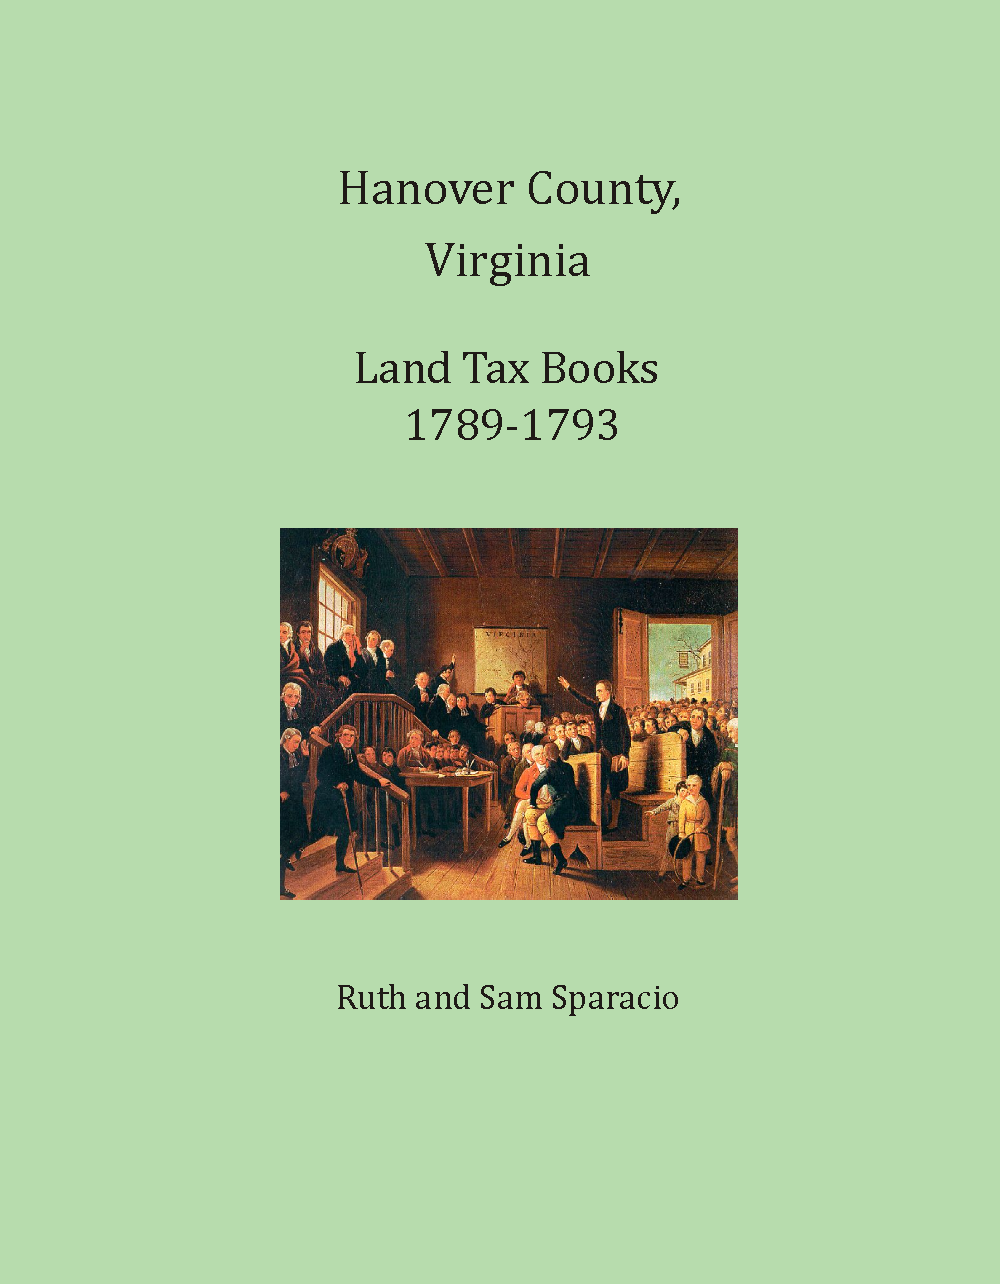 Hanover County Virginia Land Tax Book, 1789-1793